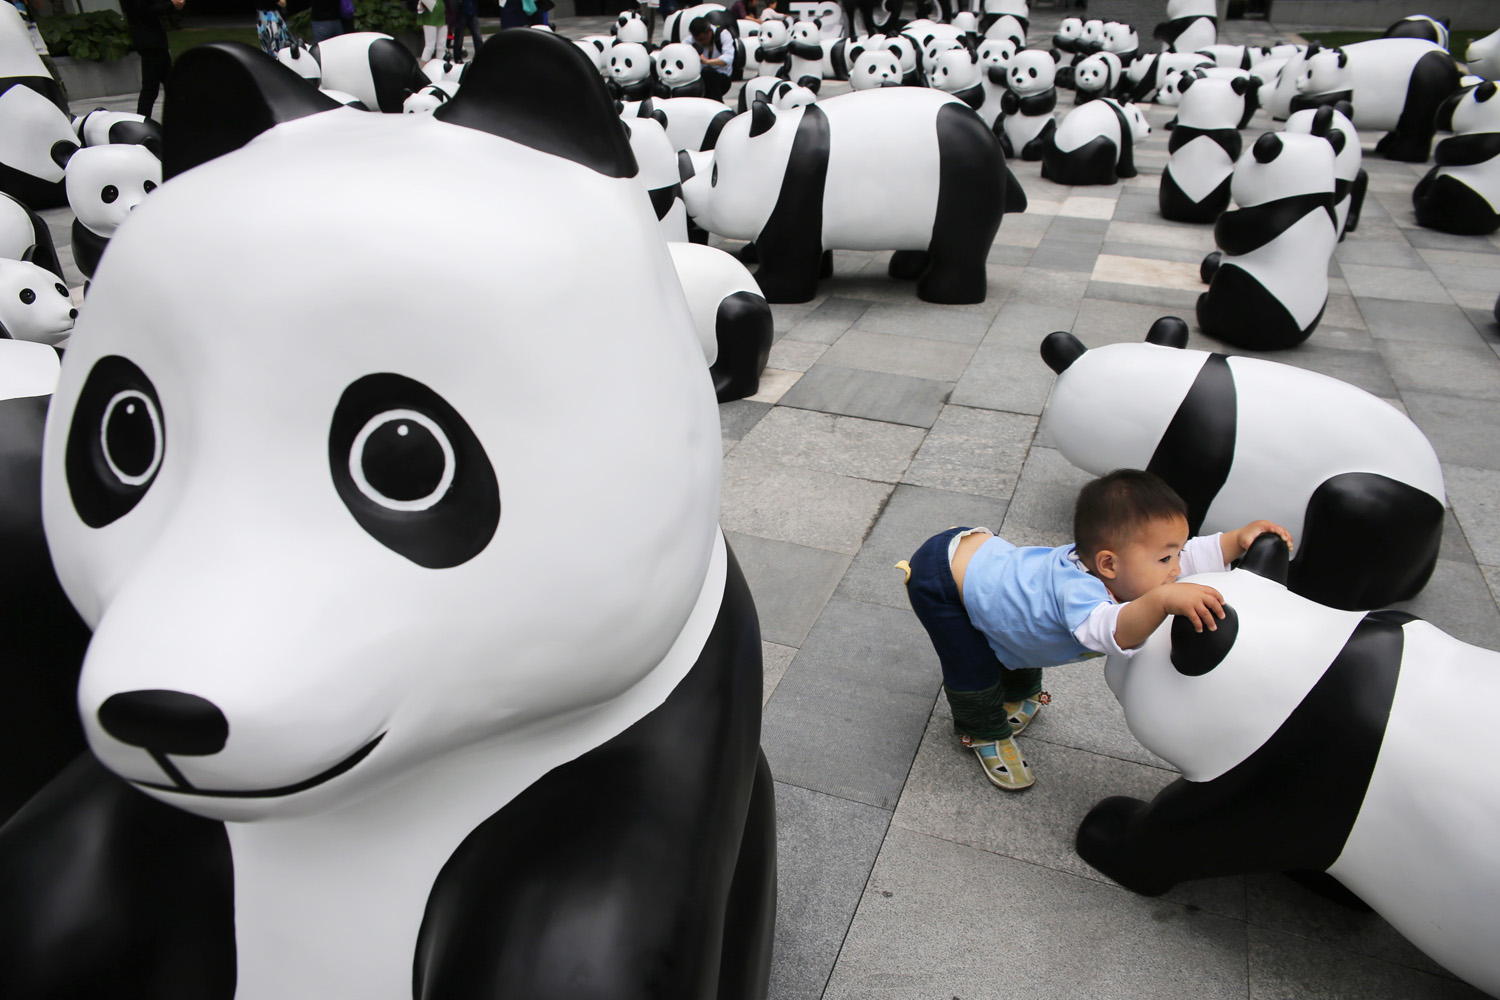 A child plays among panda sculptures at an installation in Shanghai on June 3, 2014.